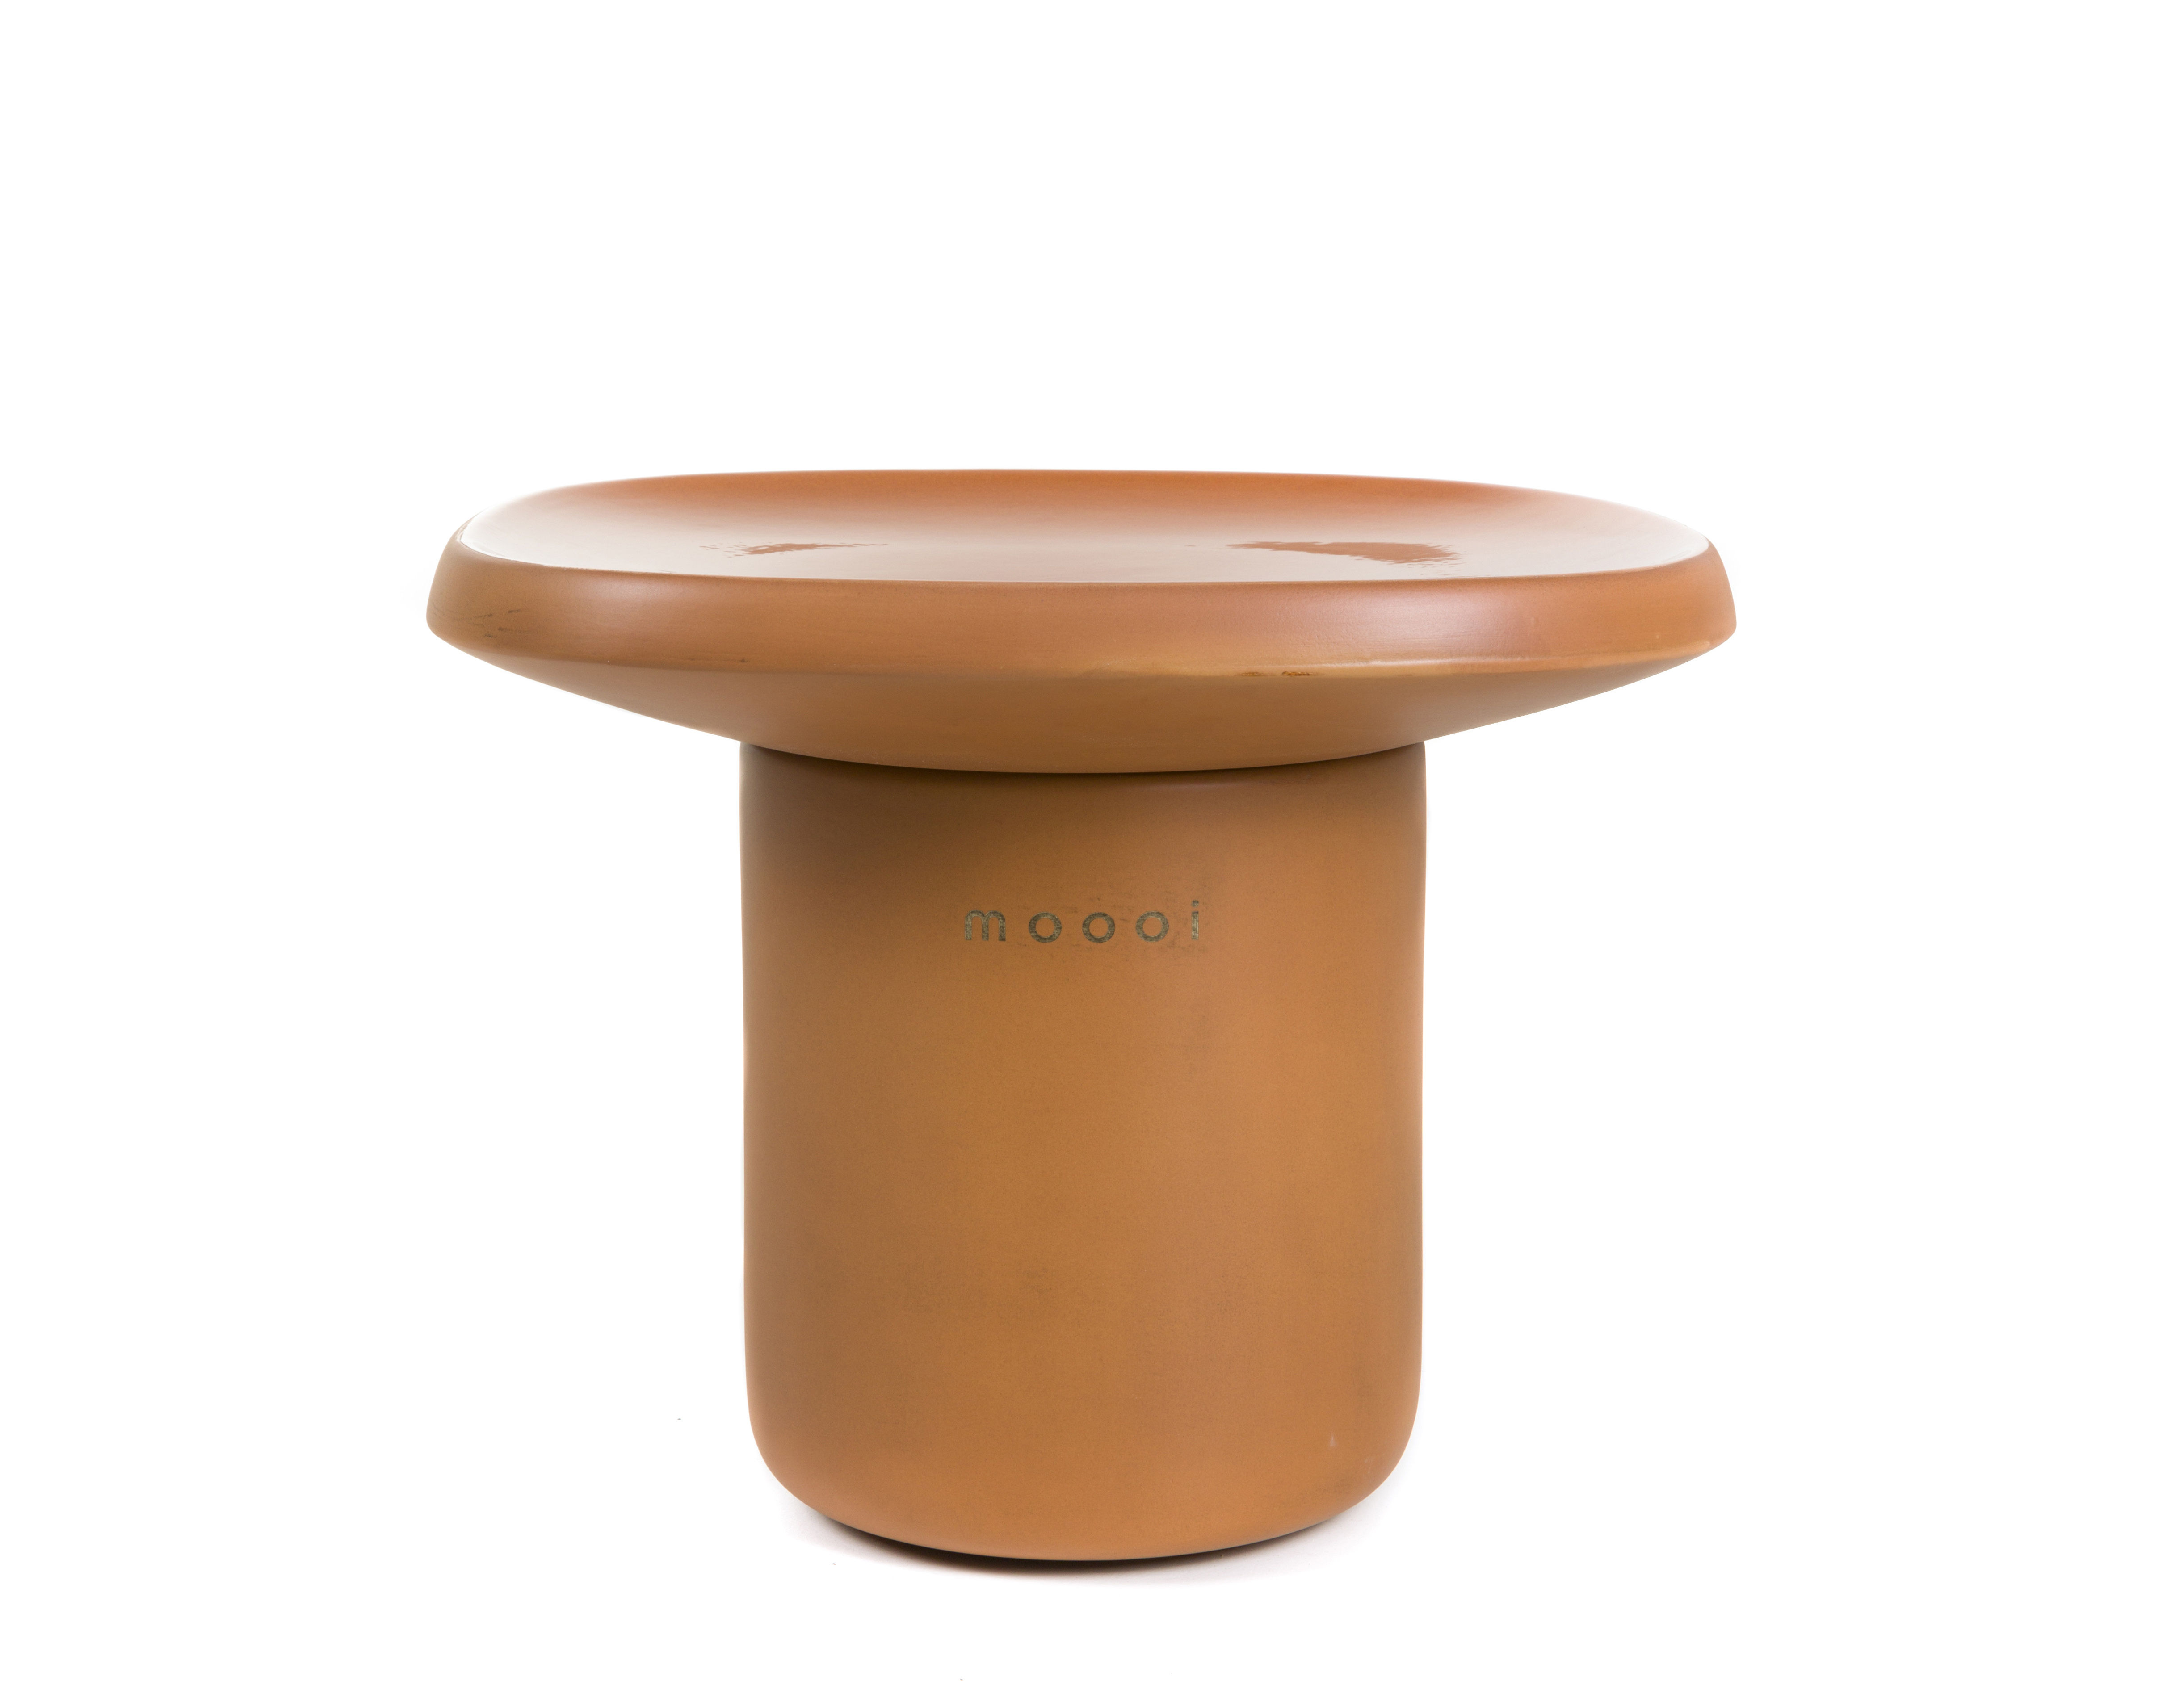 Furniture - Coffee Tables - Obon Coffee table - / Terracotta - 47 x 47 x H 37 cm by Moooi - Terracotta - Moulded terracotta